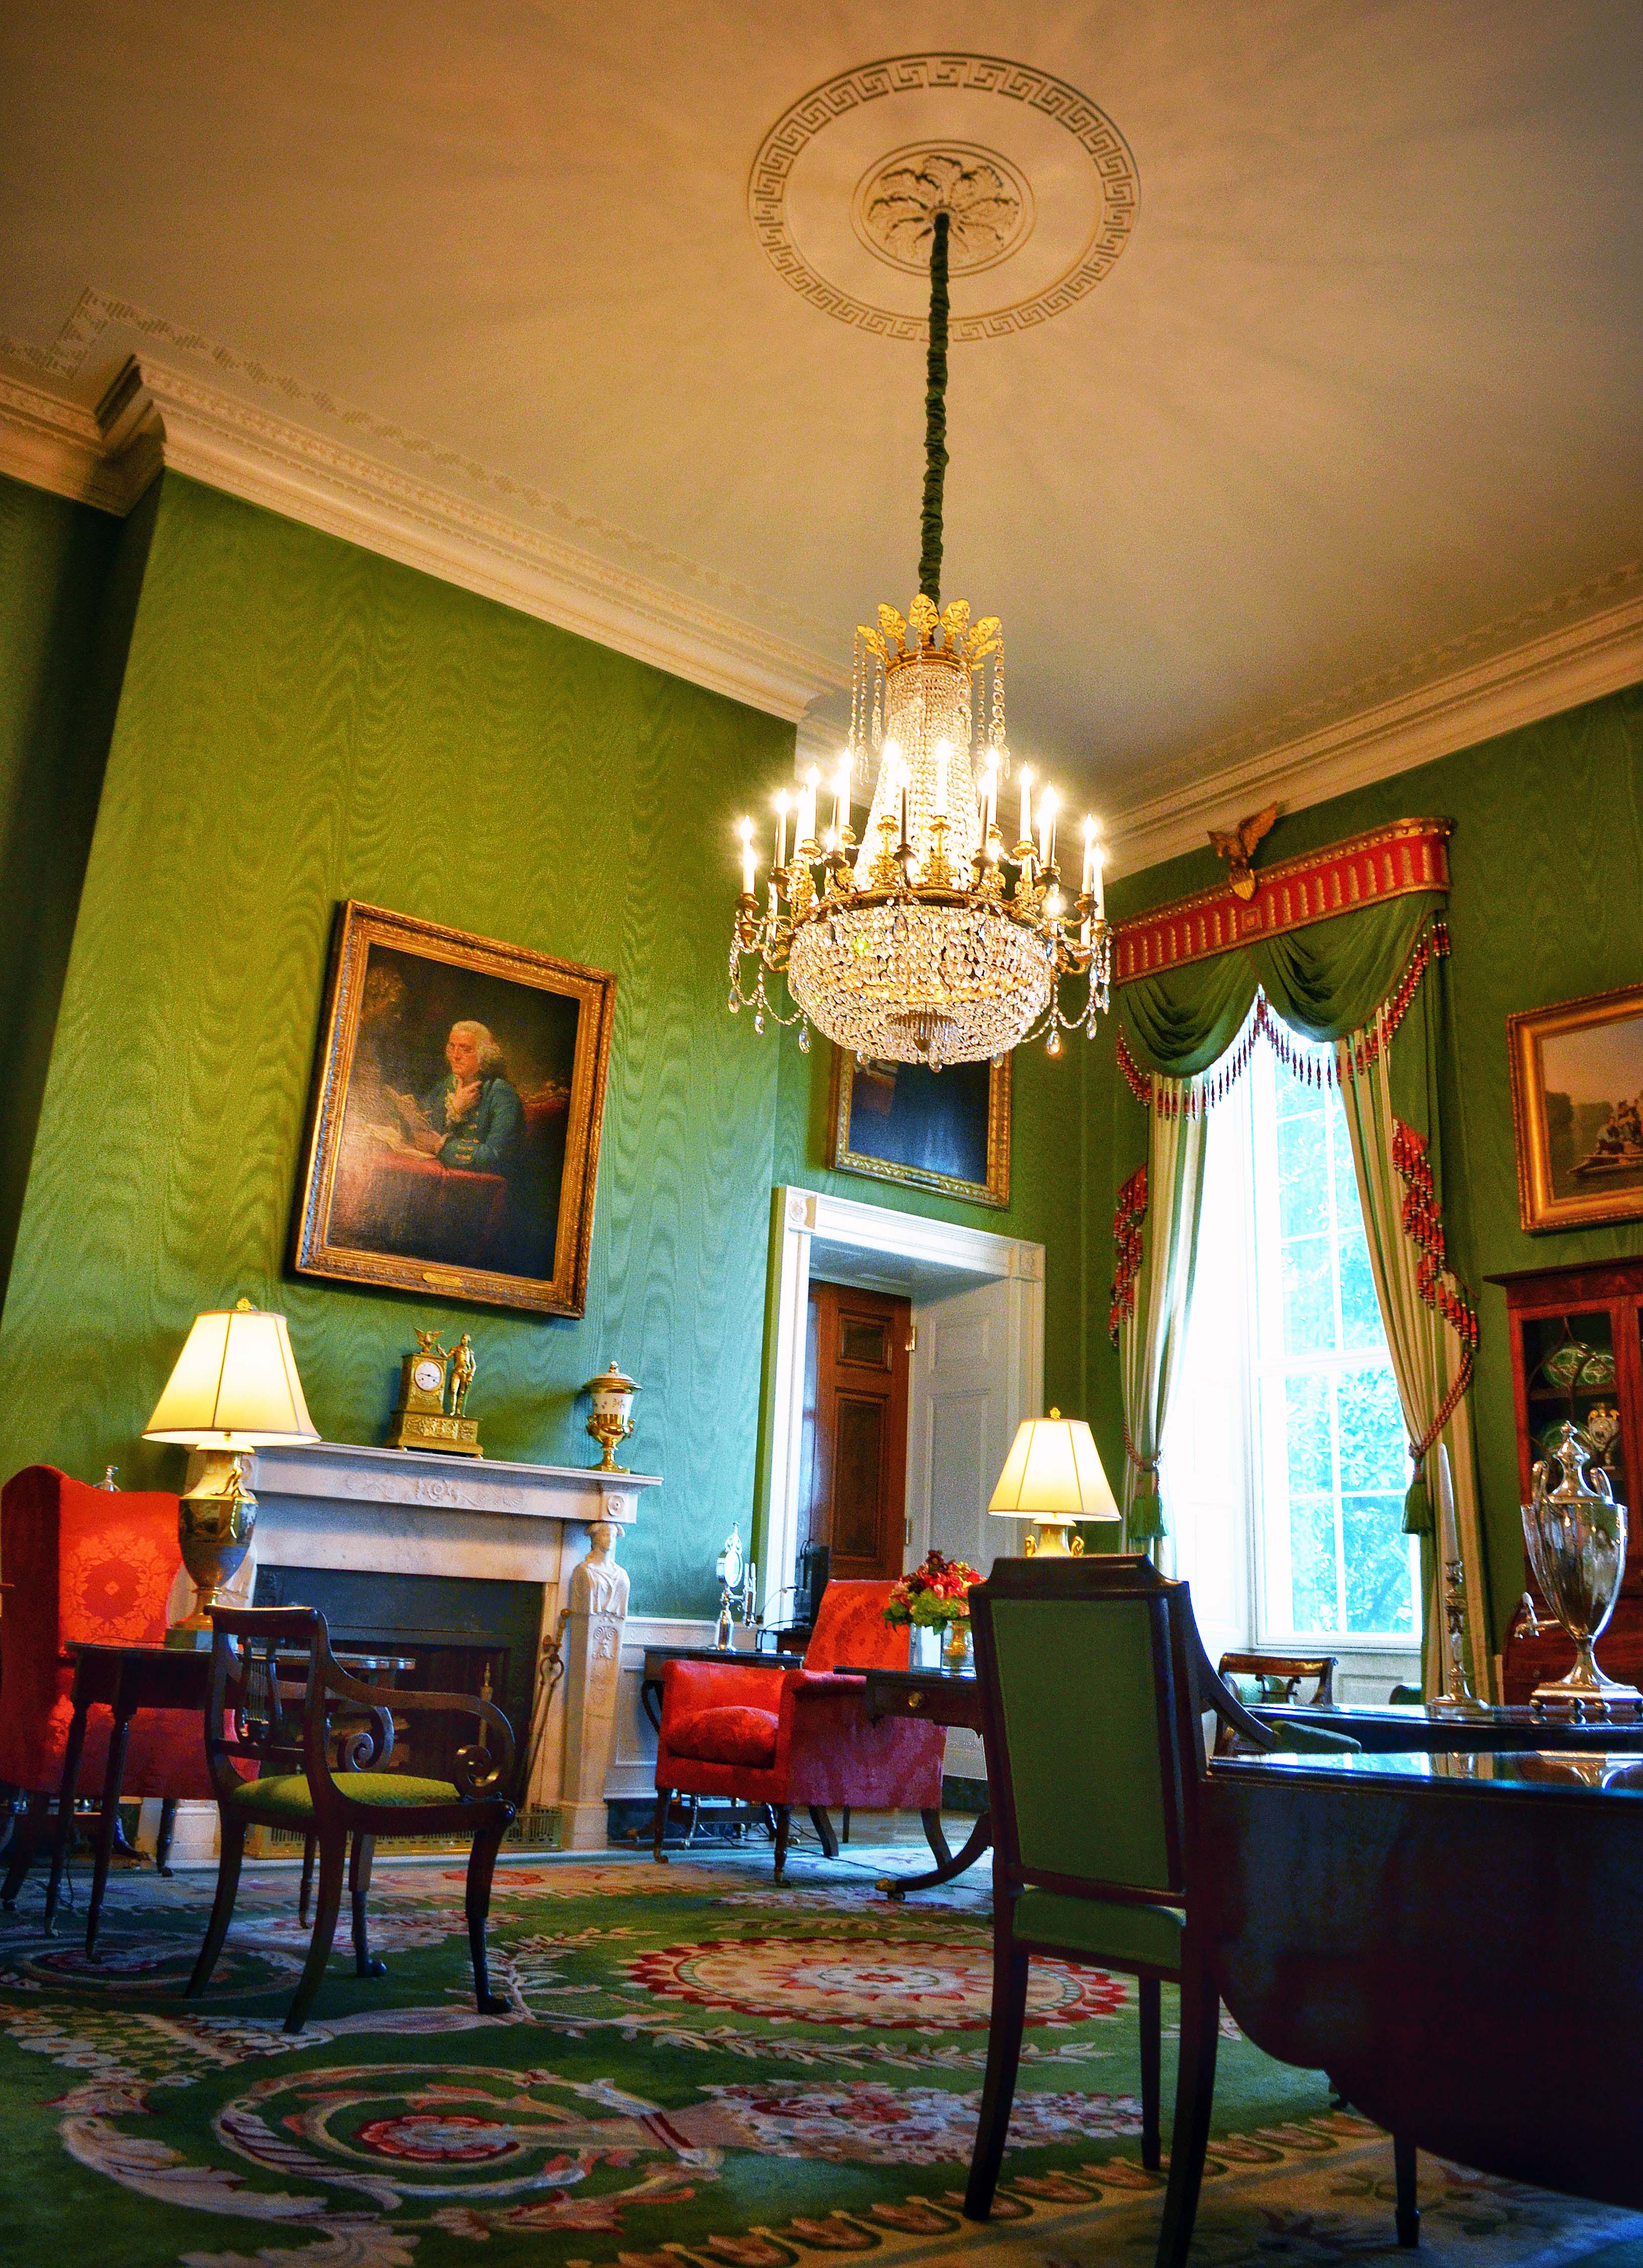 Room And House Decor Pictures: Michelle Obama's Let's Move White House Event